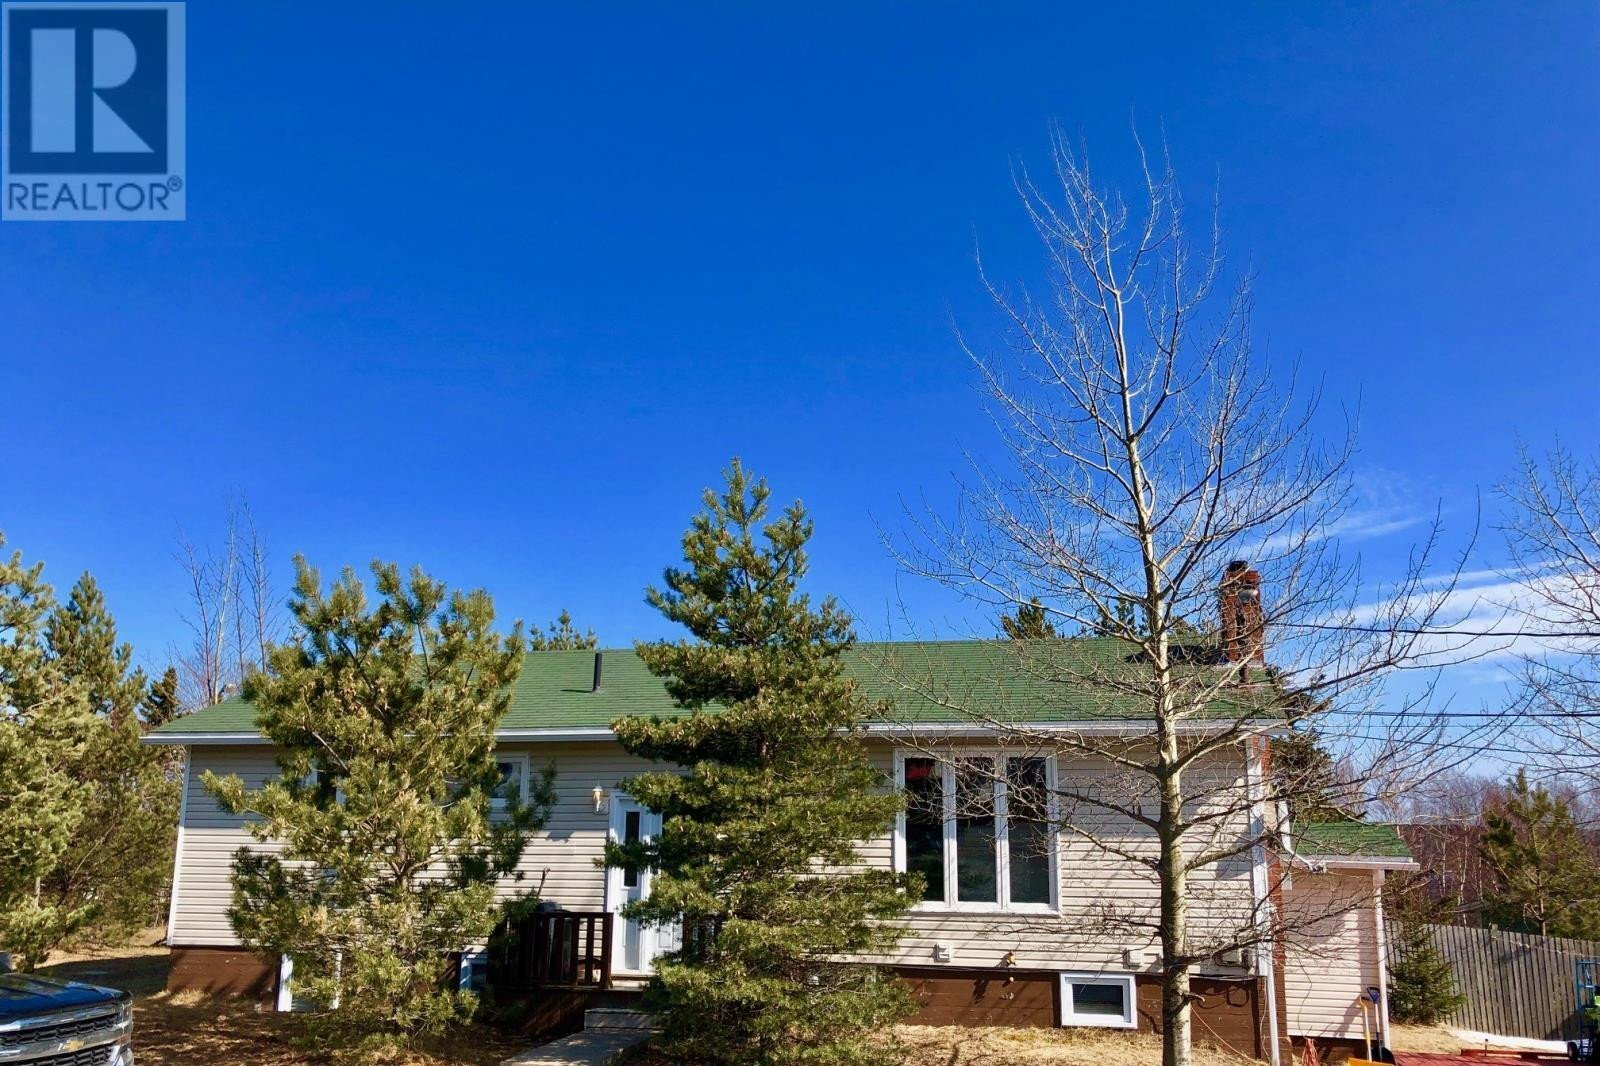 House for sale at 2 Meade View Rd Clarenville Newfoundland - MLS: 1193003